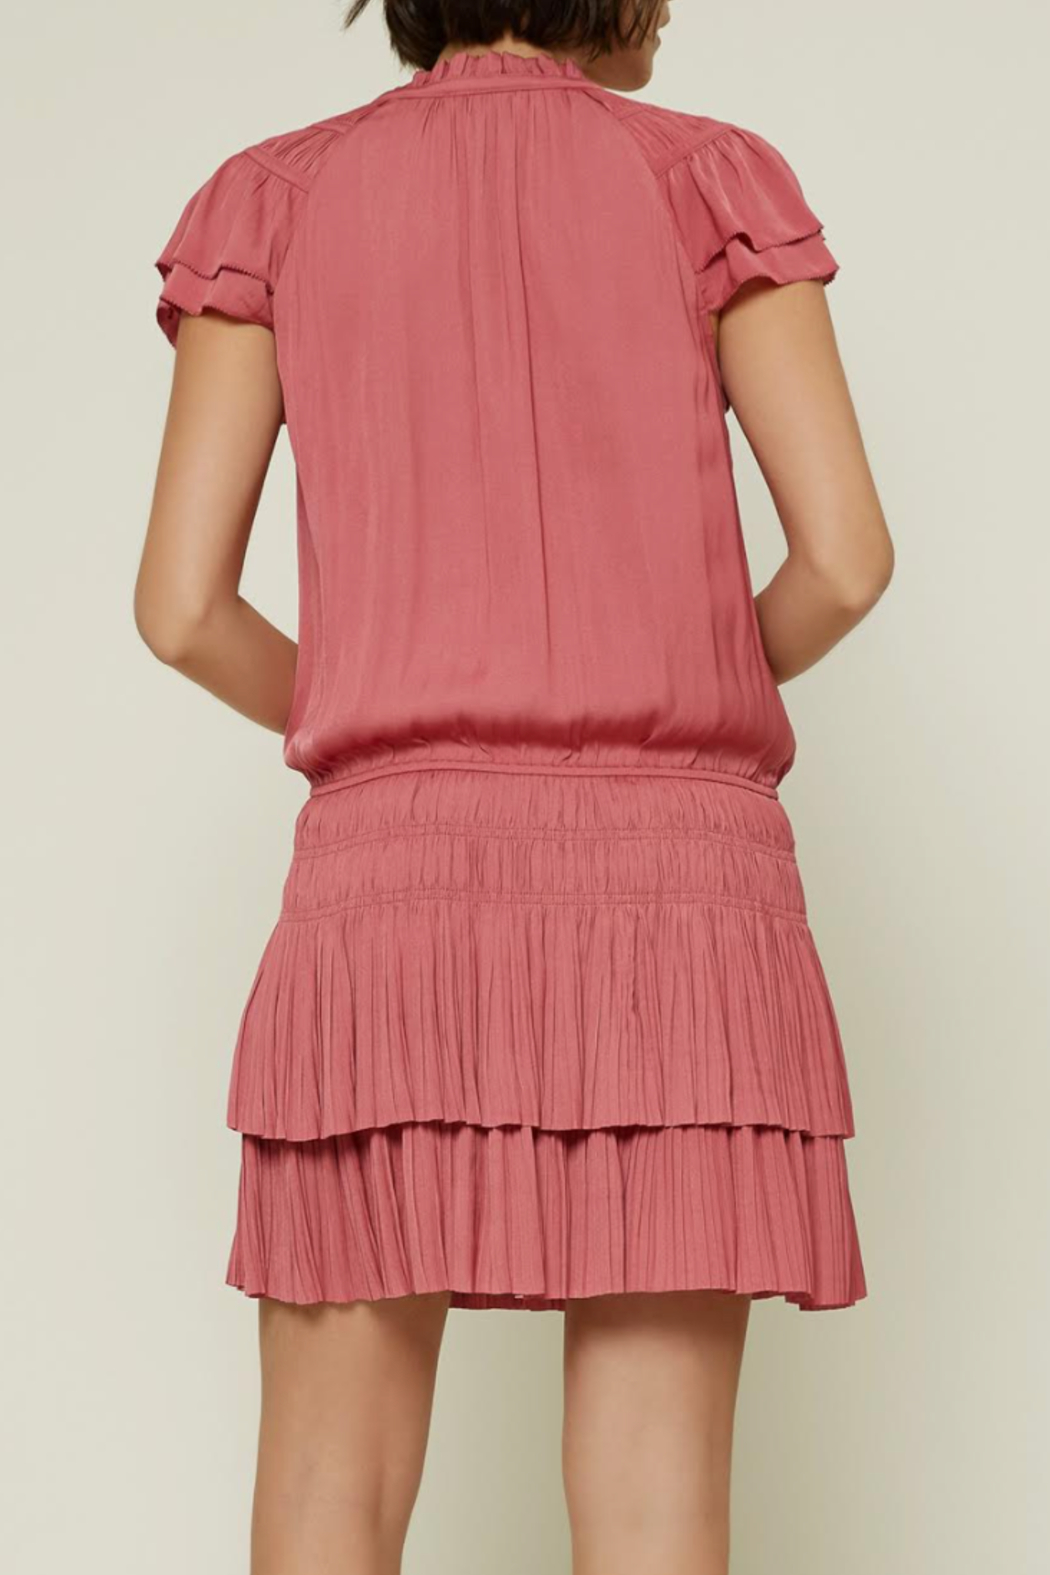 Current Air Tiered Ruffle Dress - Front Full Image